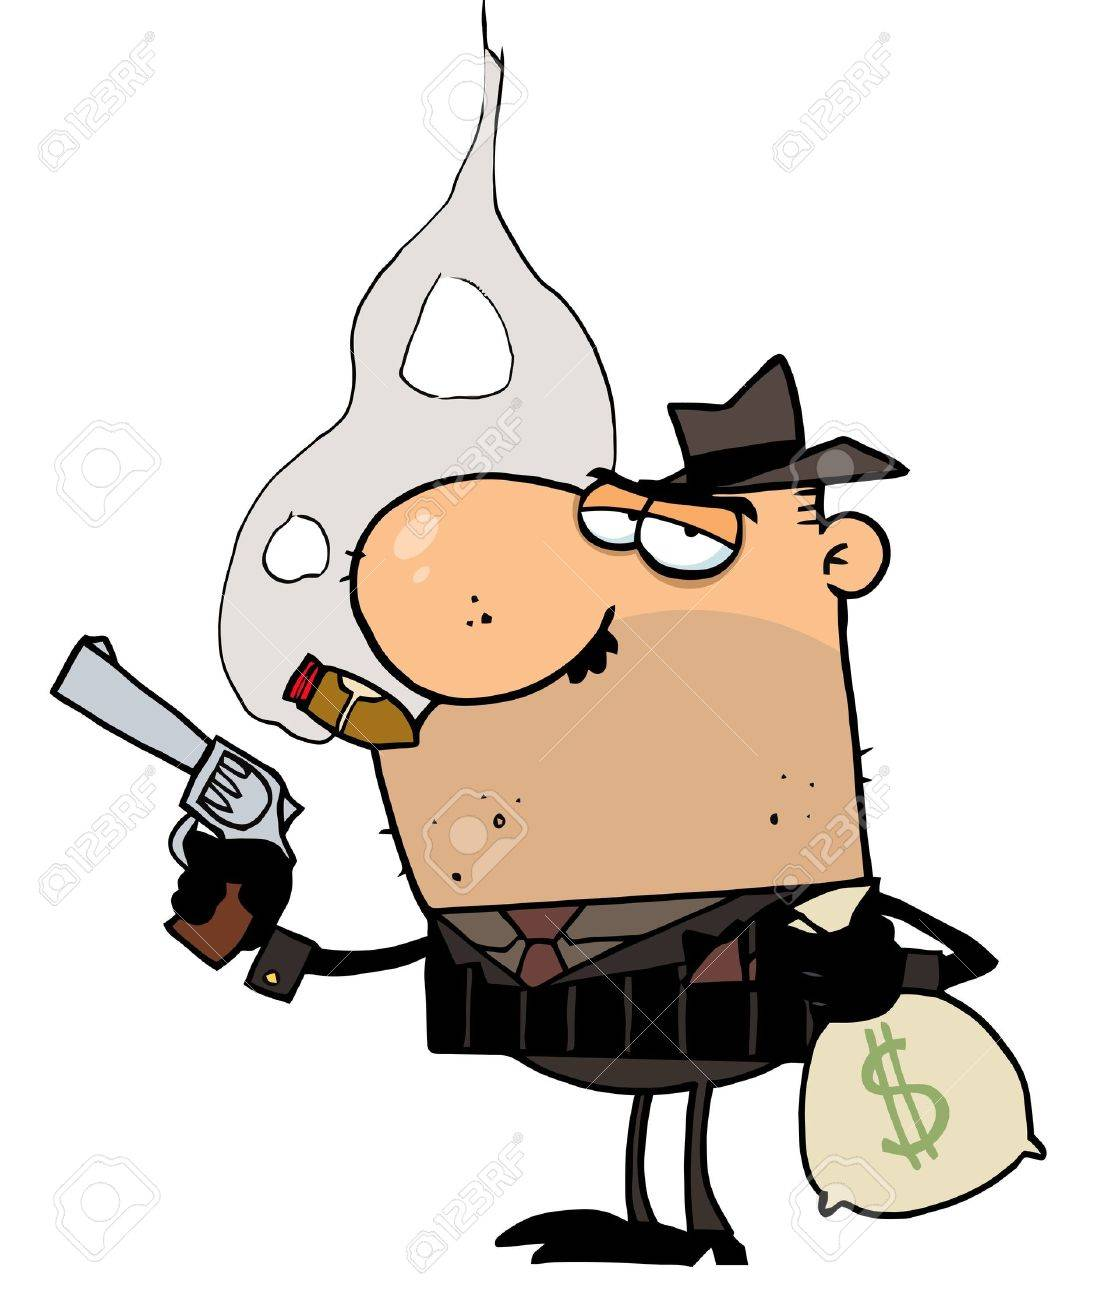 Gangster clipart 5 » Clipart Station.